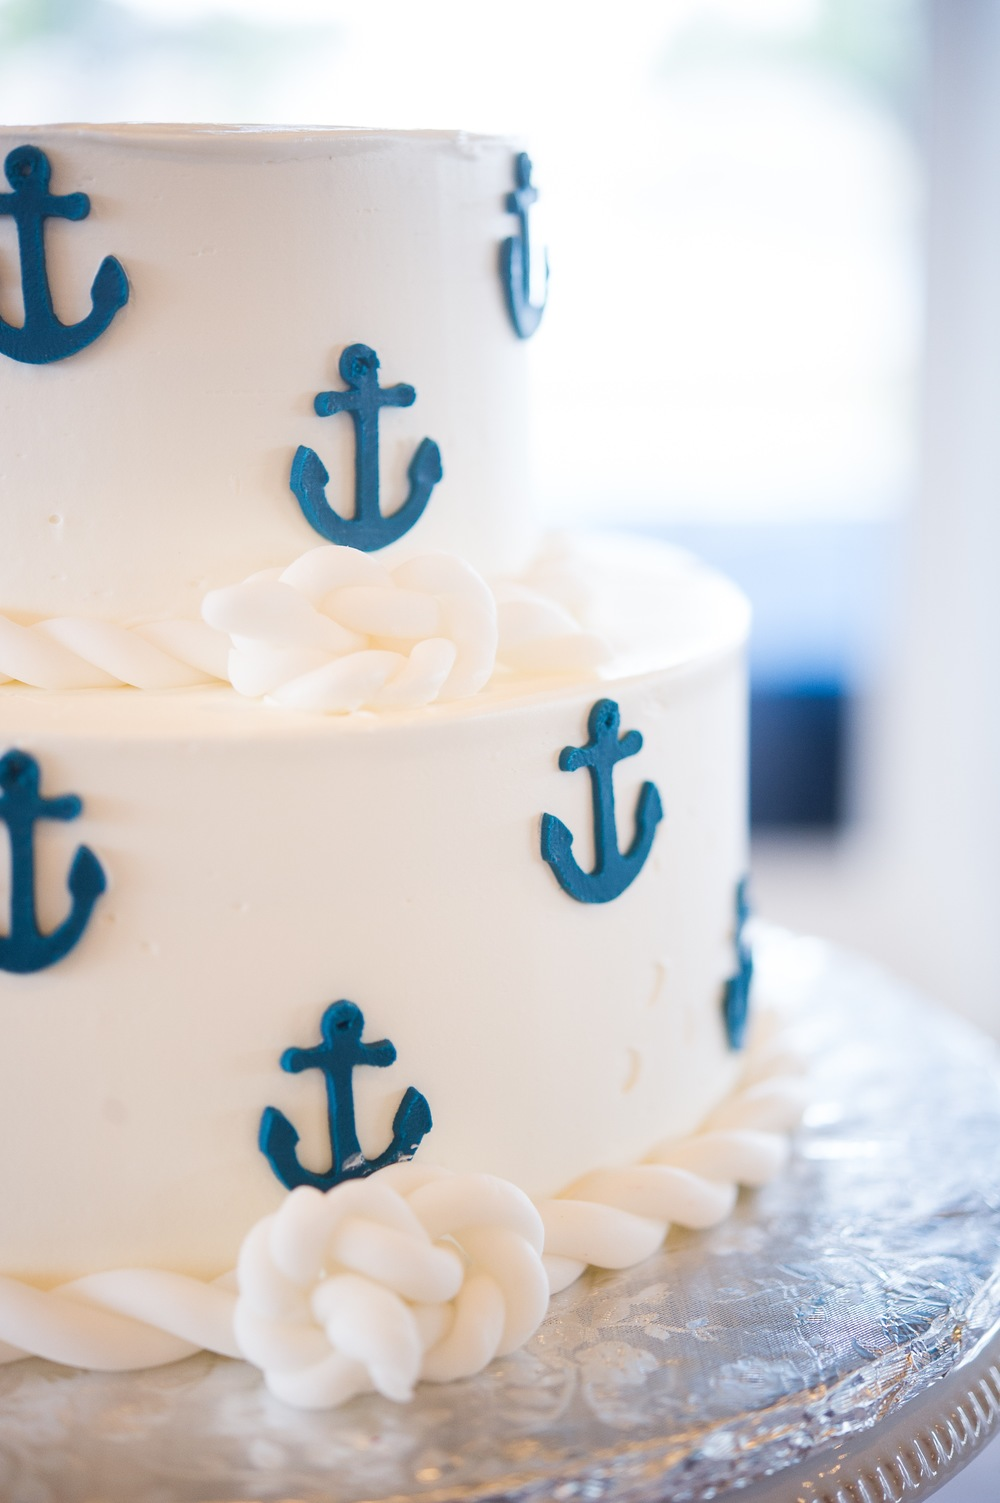 Jcrew Kate Spade Nautical Glam inspired Wedding49.jpg